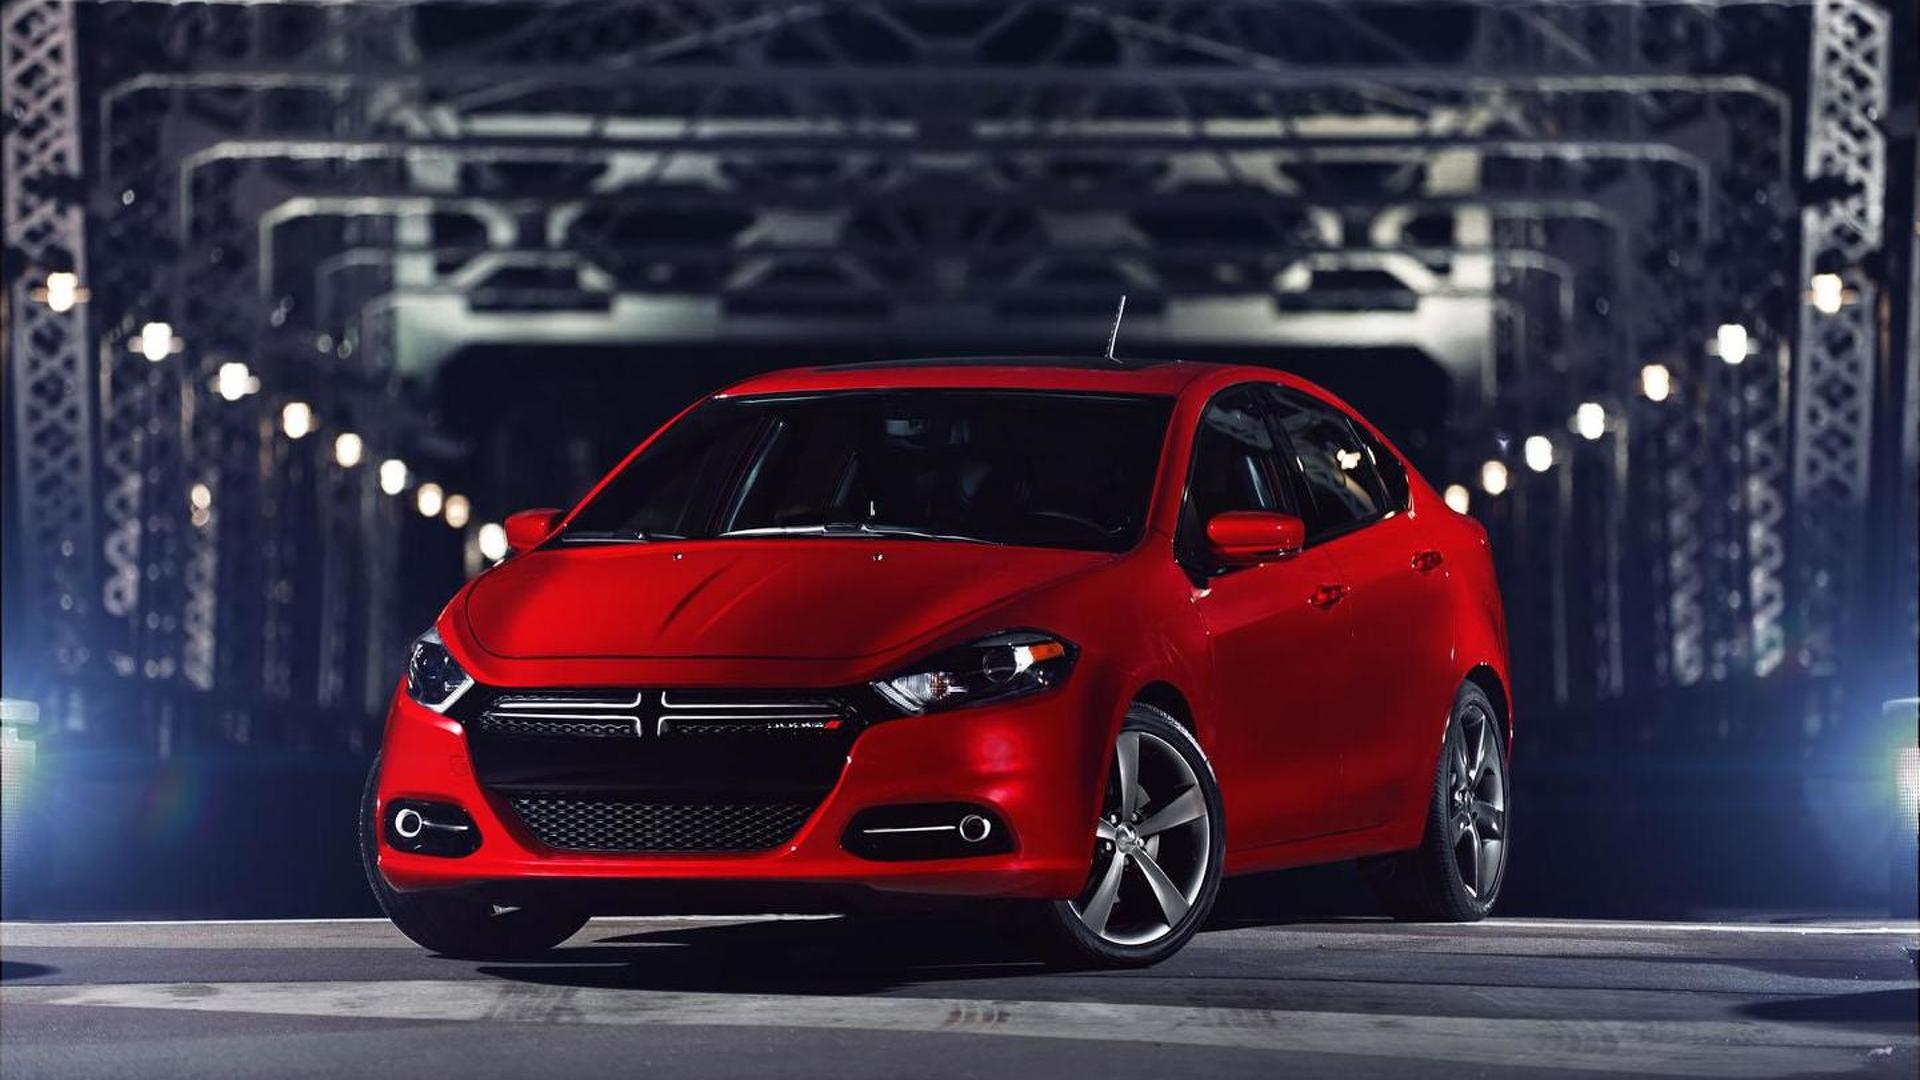 9-speed auto in Dodge Dart, Jeep Liberty successor and next-gen Chrysler 200